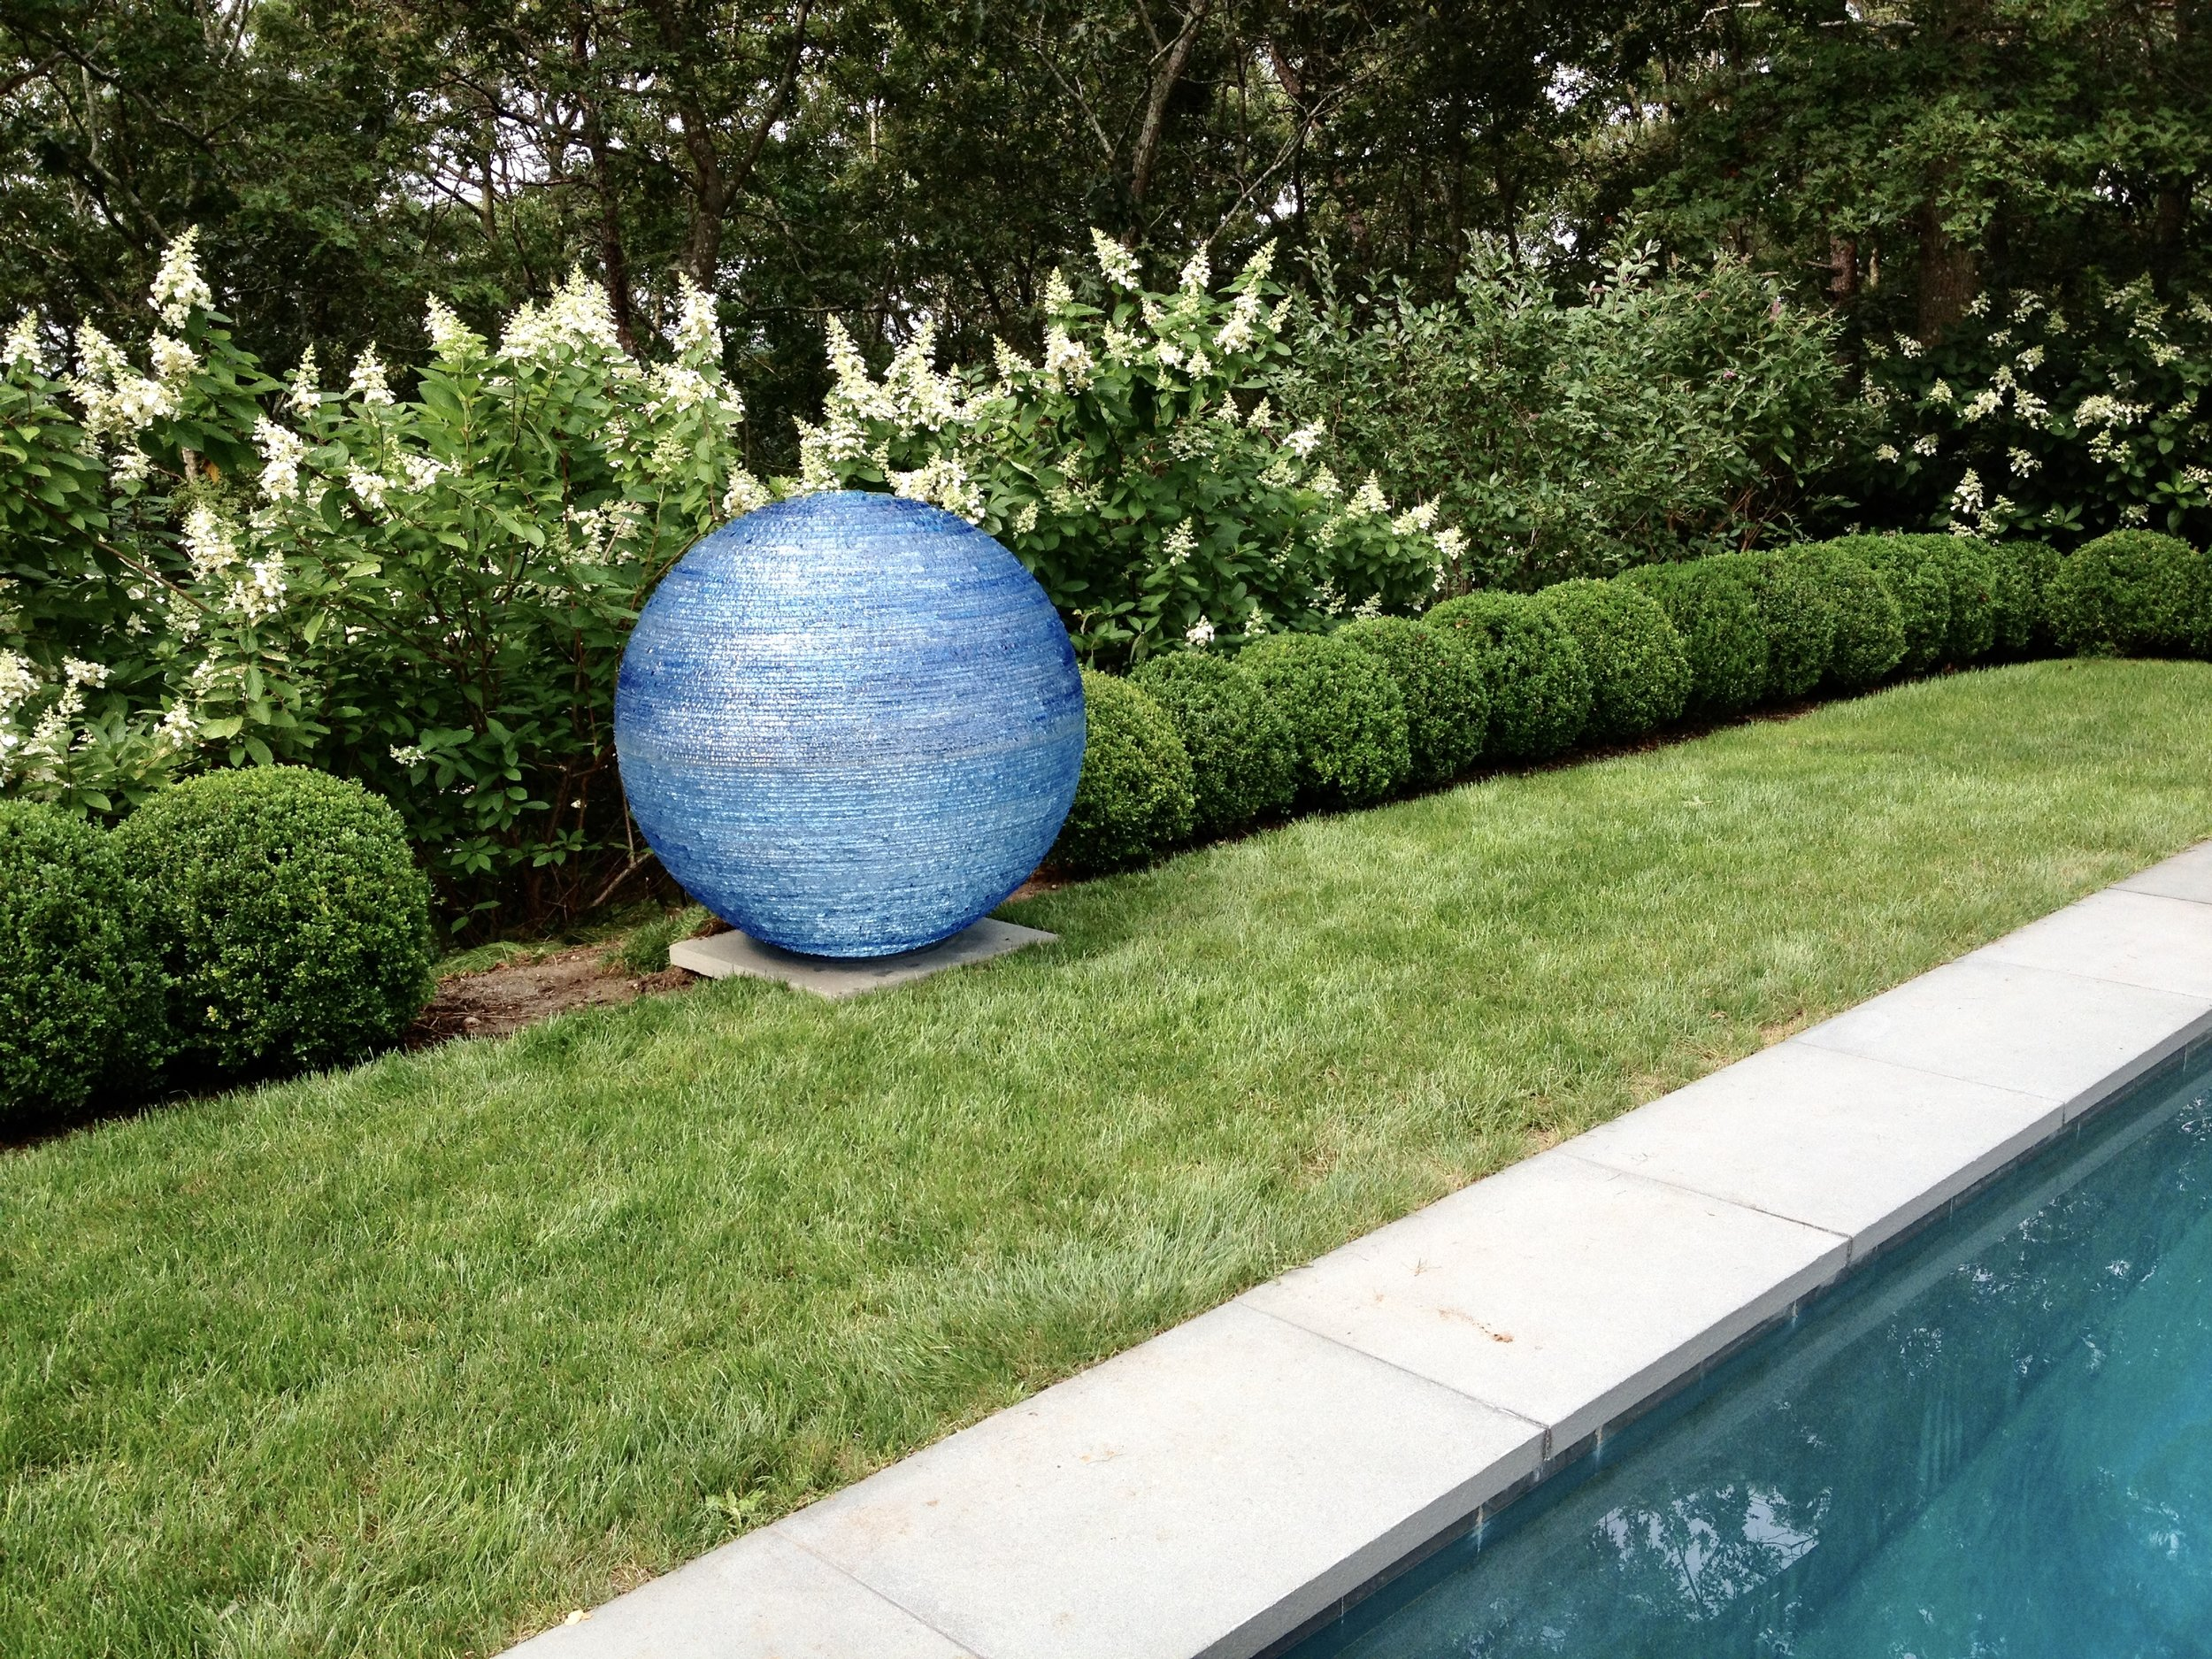 Henry-Richardson-blue-glass-orb-sphere-sculpture-swimming-pool-landscape-garden.jpg